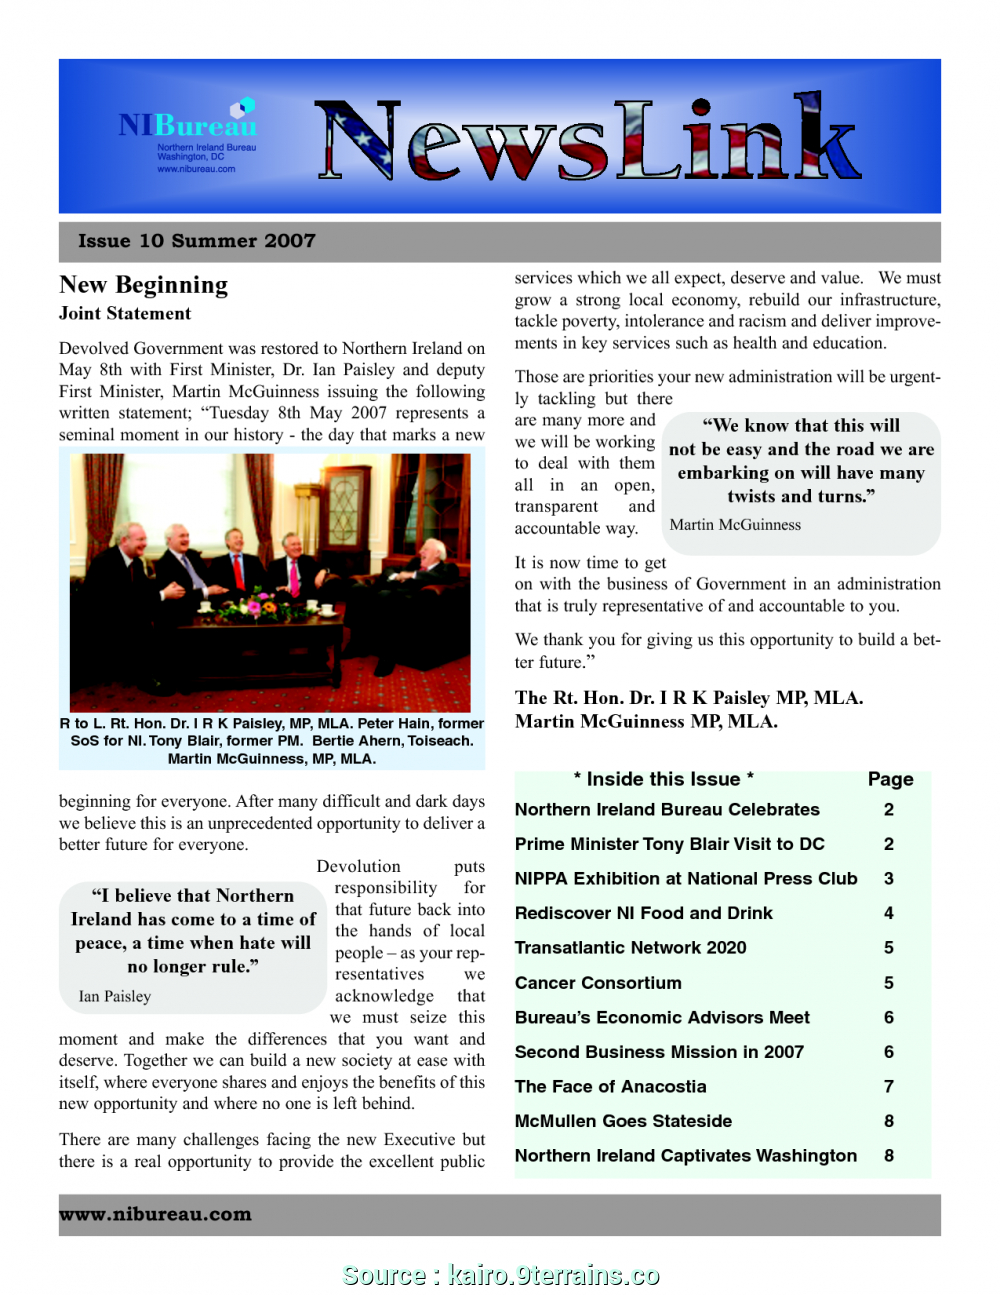 Business Newsletter Templates Free Download Word Microsoft Regarding Free Business Newsletter Templates For Microsoft Word